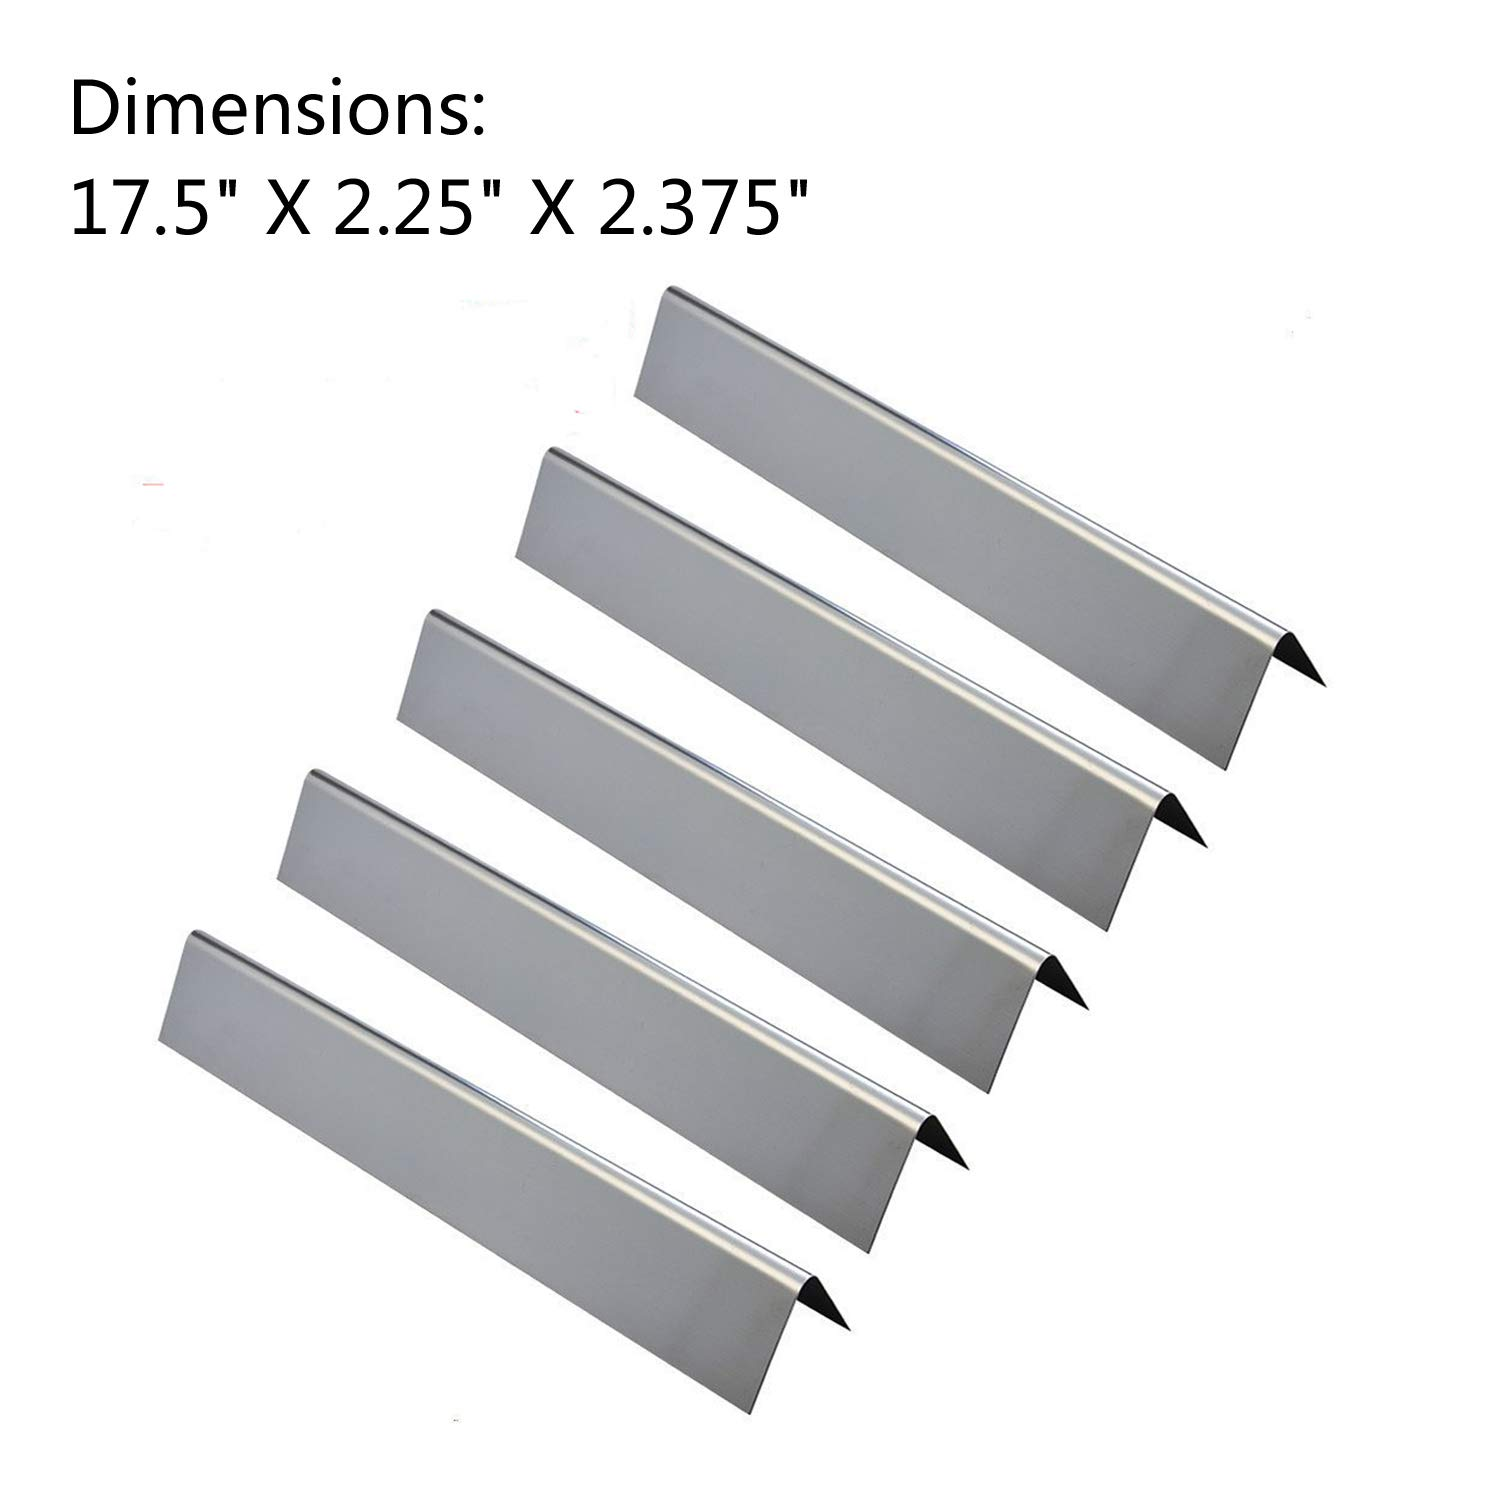 GasSaf 17.5inch Flavorizer Bar Replacement for Weber 7620, Genesis 300, E310, S310, E330, EP-330 Series Grill, 5-Pack Stainless Steel Flavor Bar (L17.5 x W2.25 x H2.375) by GasSaf